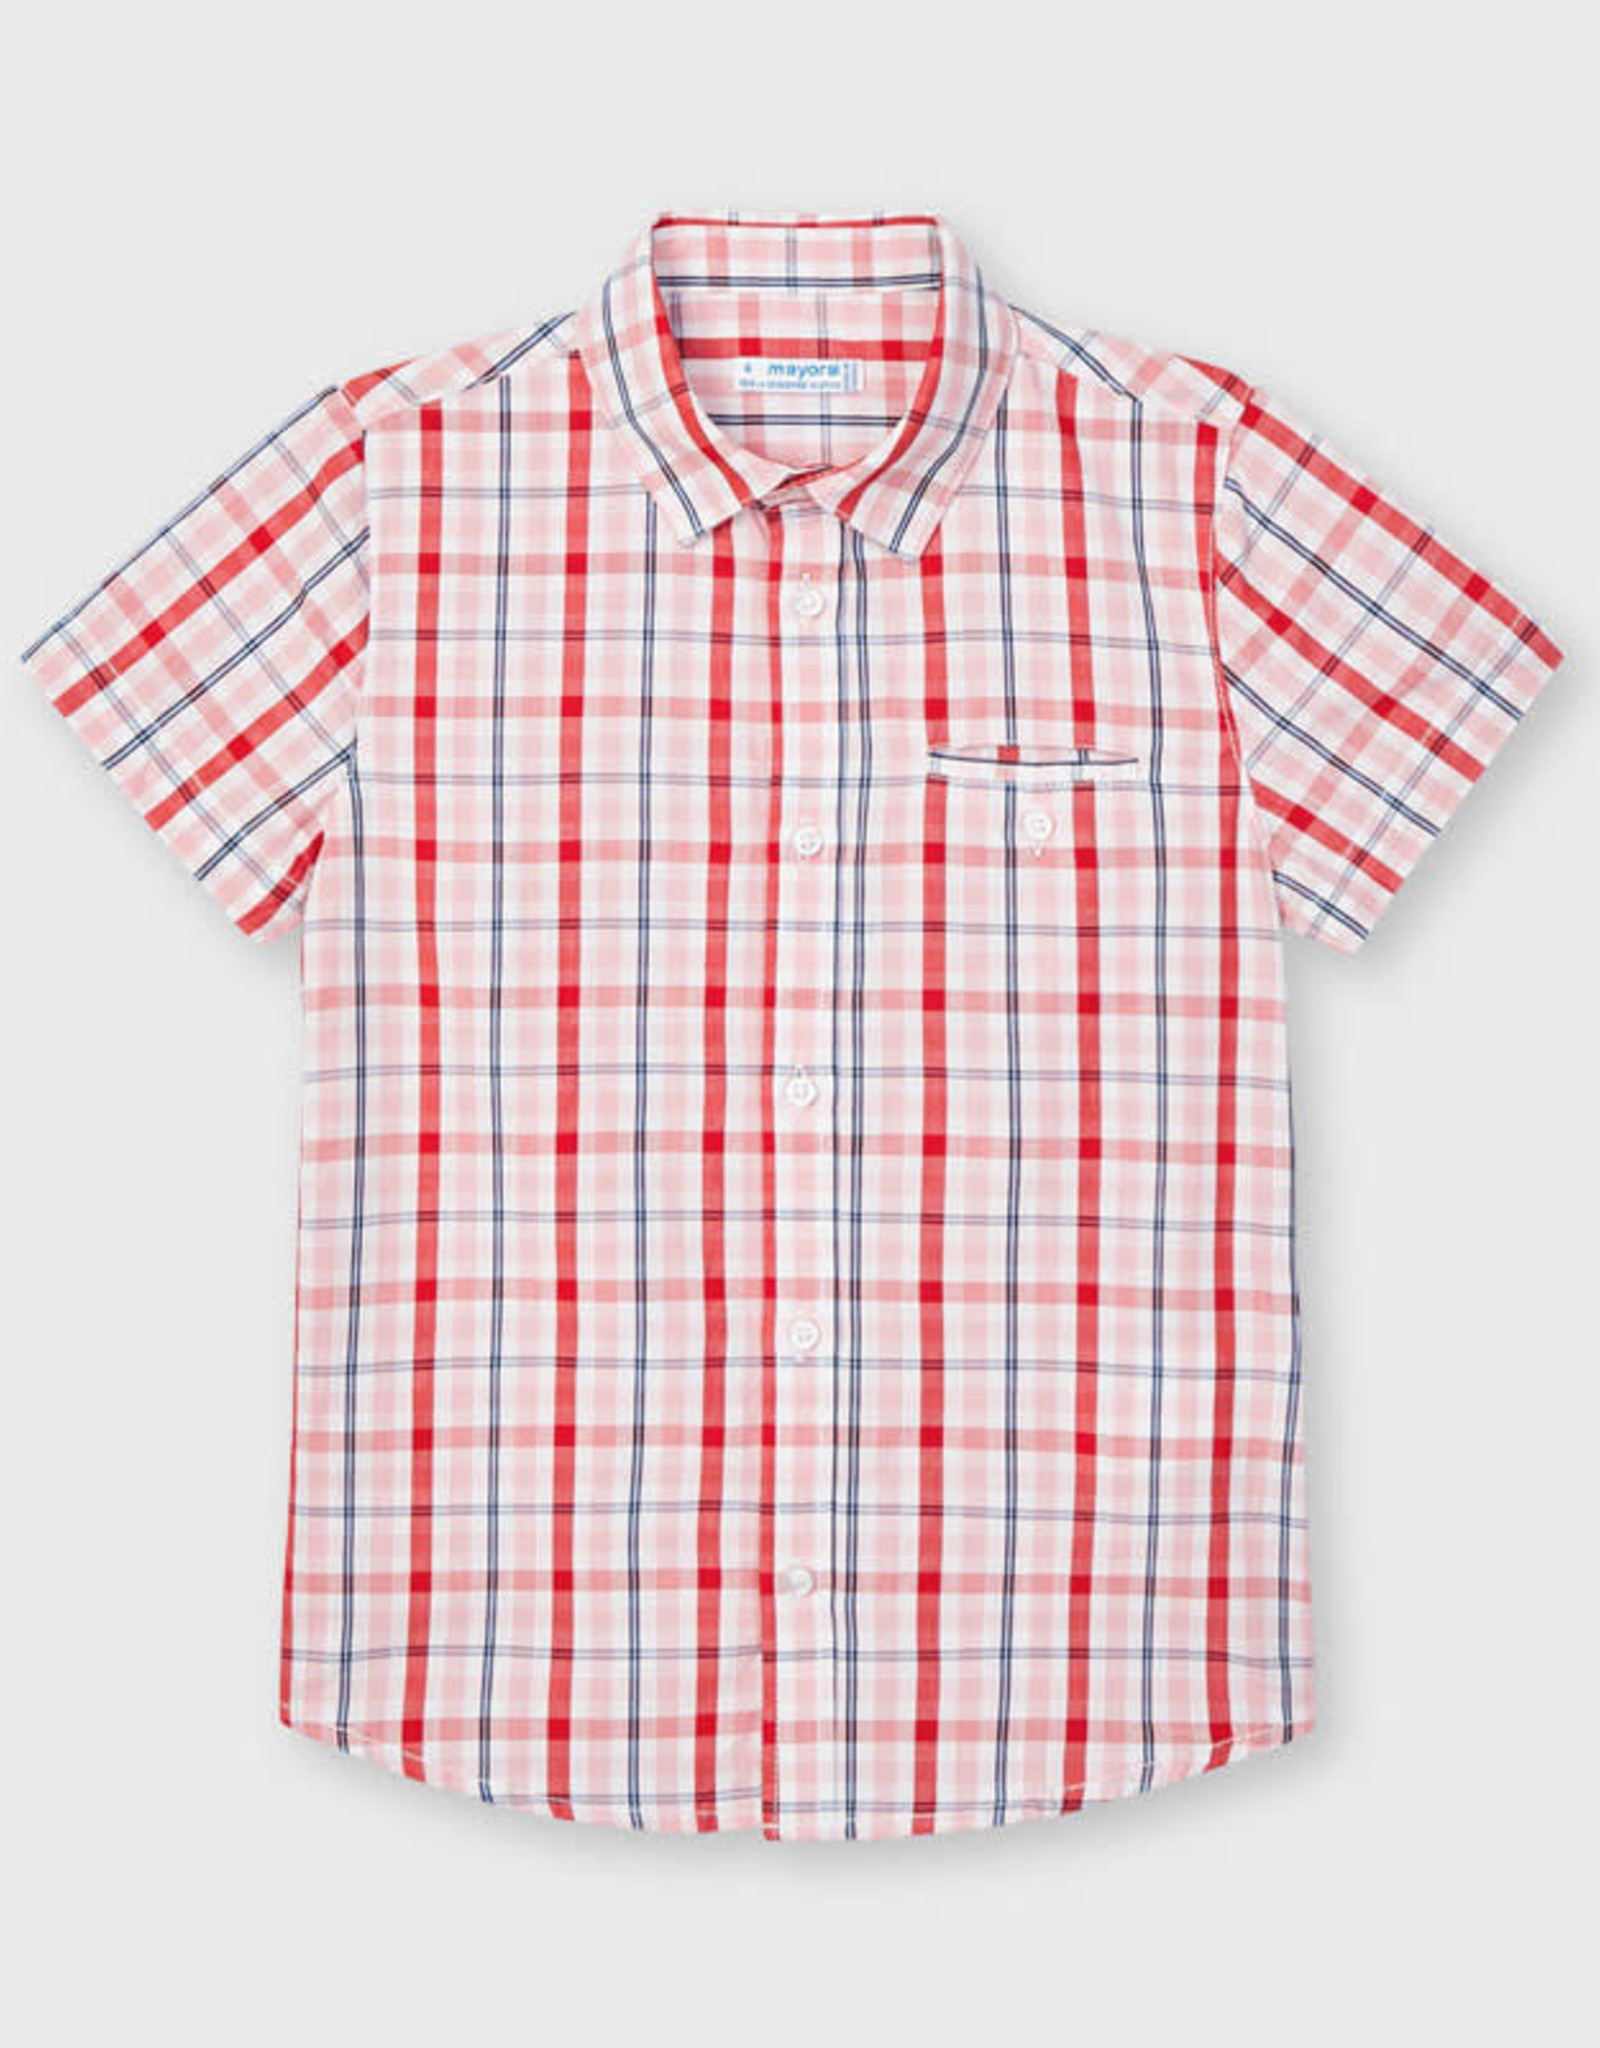 Mayoral Shirt Red Plaid S/S